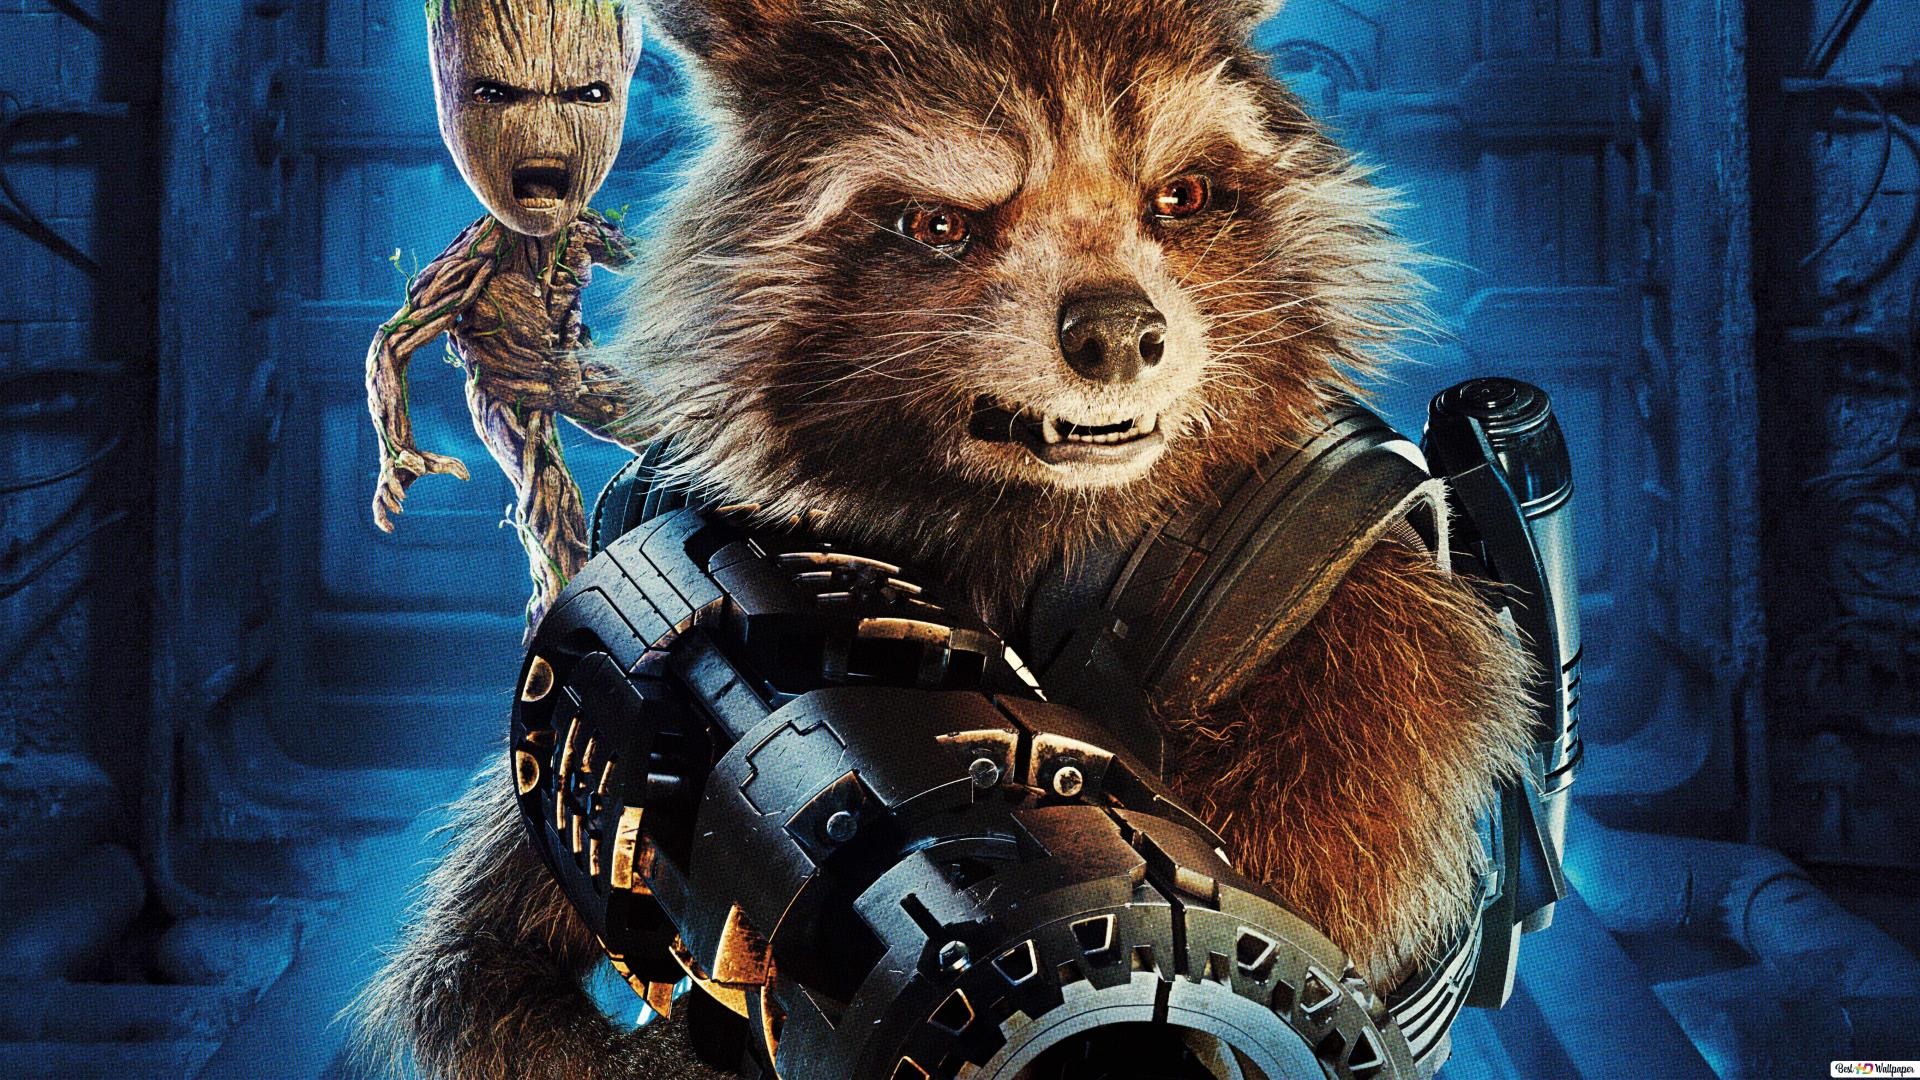 Mad Groot And Rocket Raccoon Hd Wallpaper Download